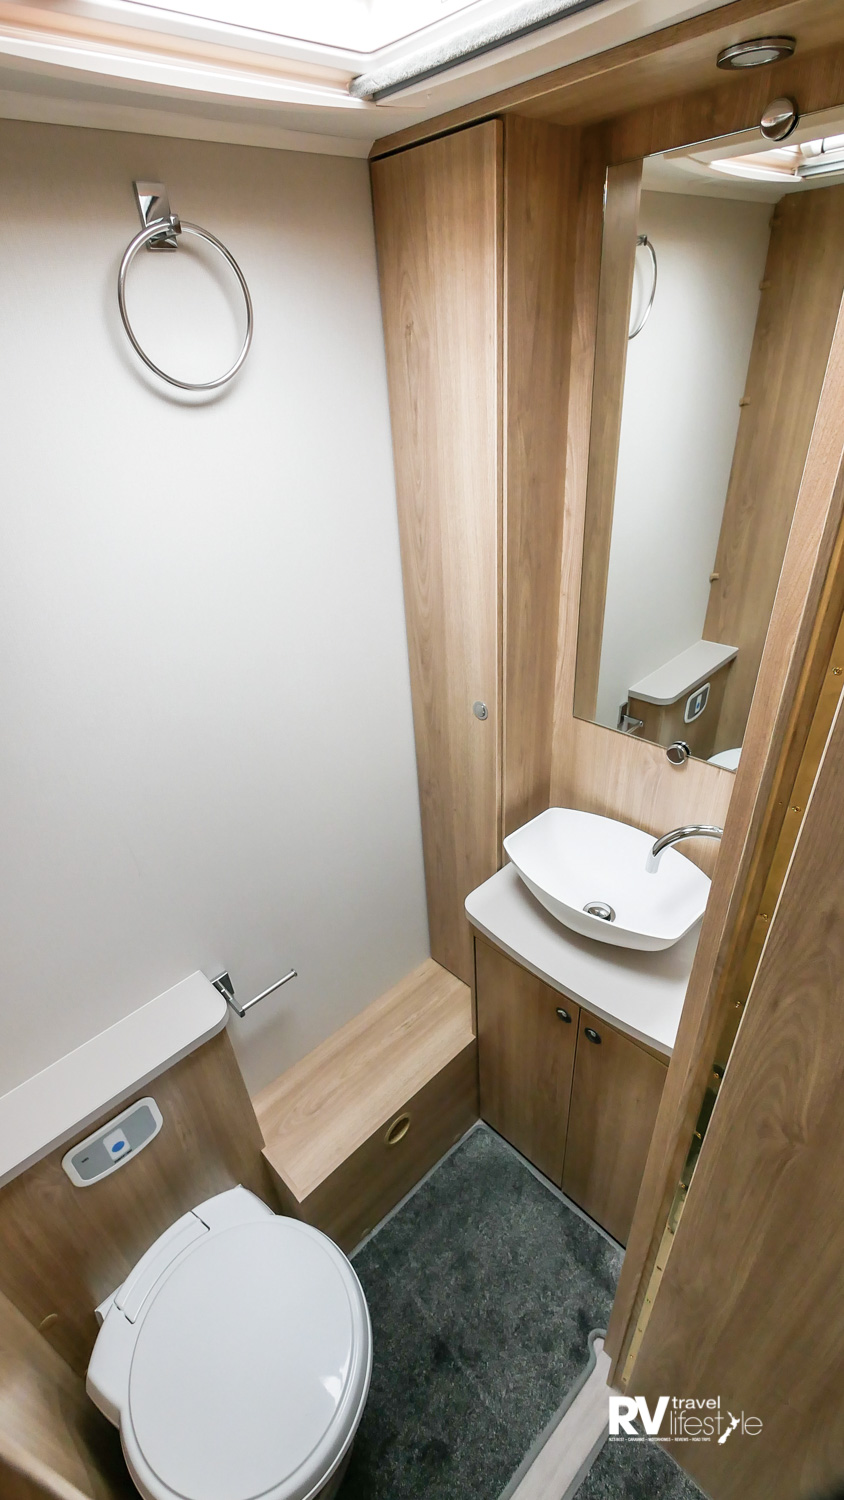 Separate toilet ensuite with vanity, composite vanity basin, and long shallow cupboard storage to the left. Electric flush cassette swivel toilet, roof vent above